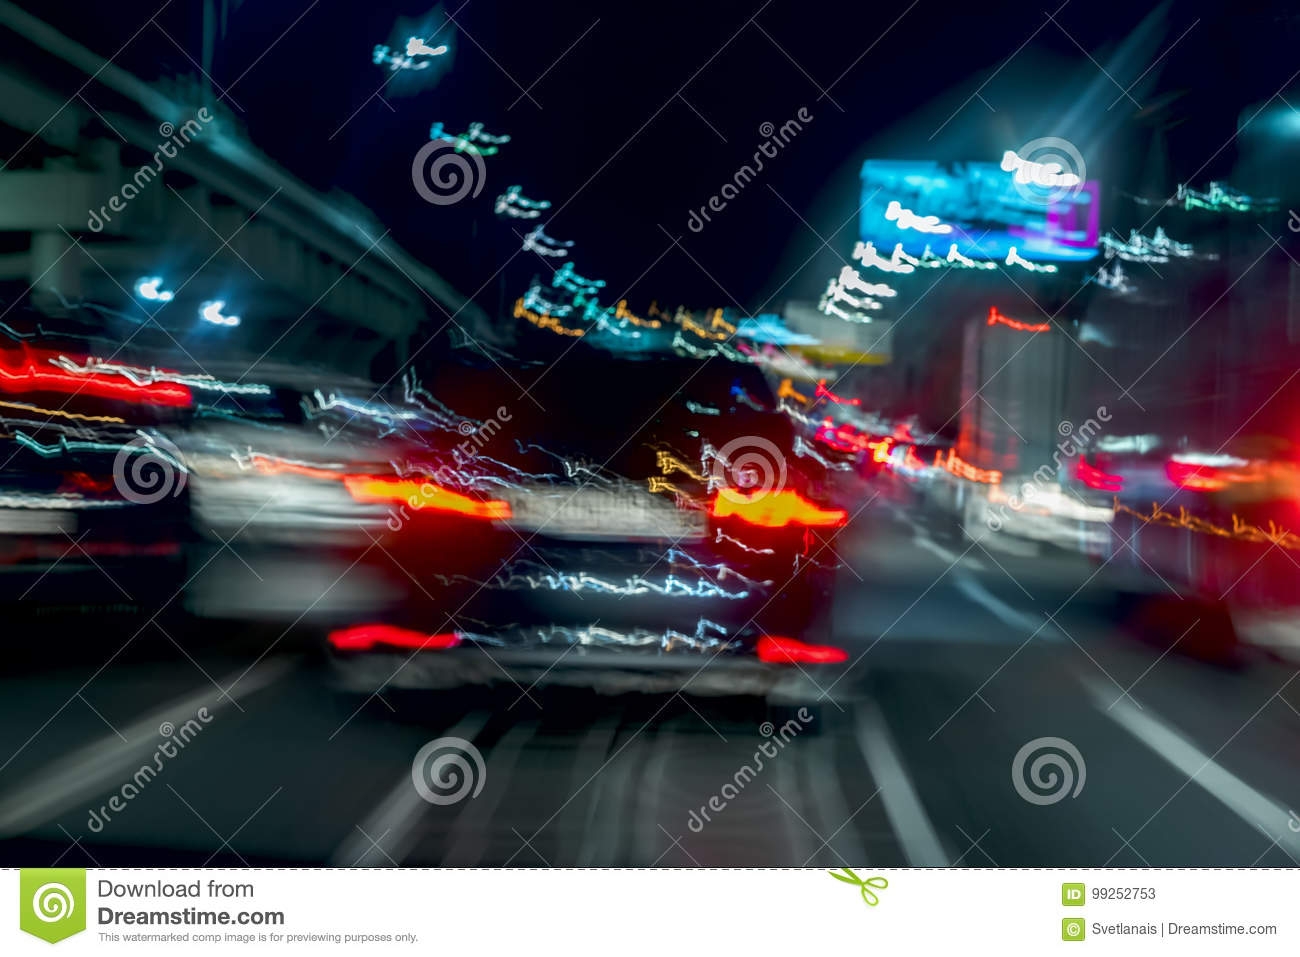 Fast driving traffic at night, blue colors. Abstract blurred background of urban moving car with bright brake lights at